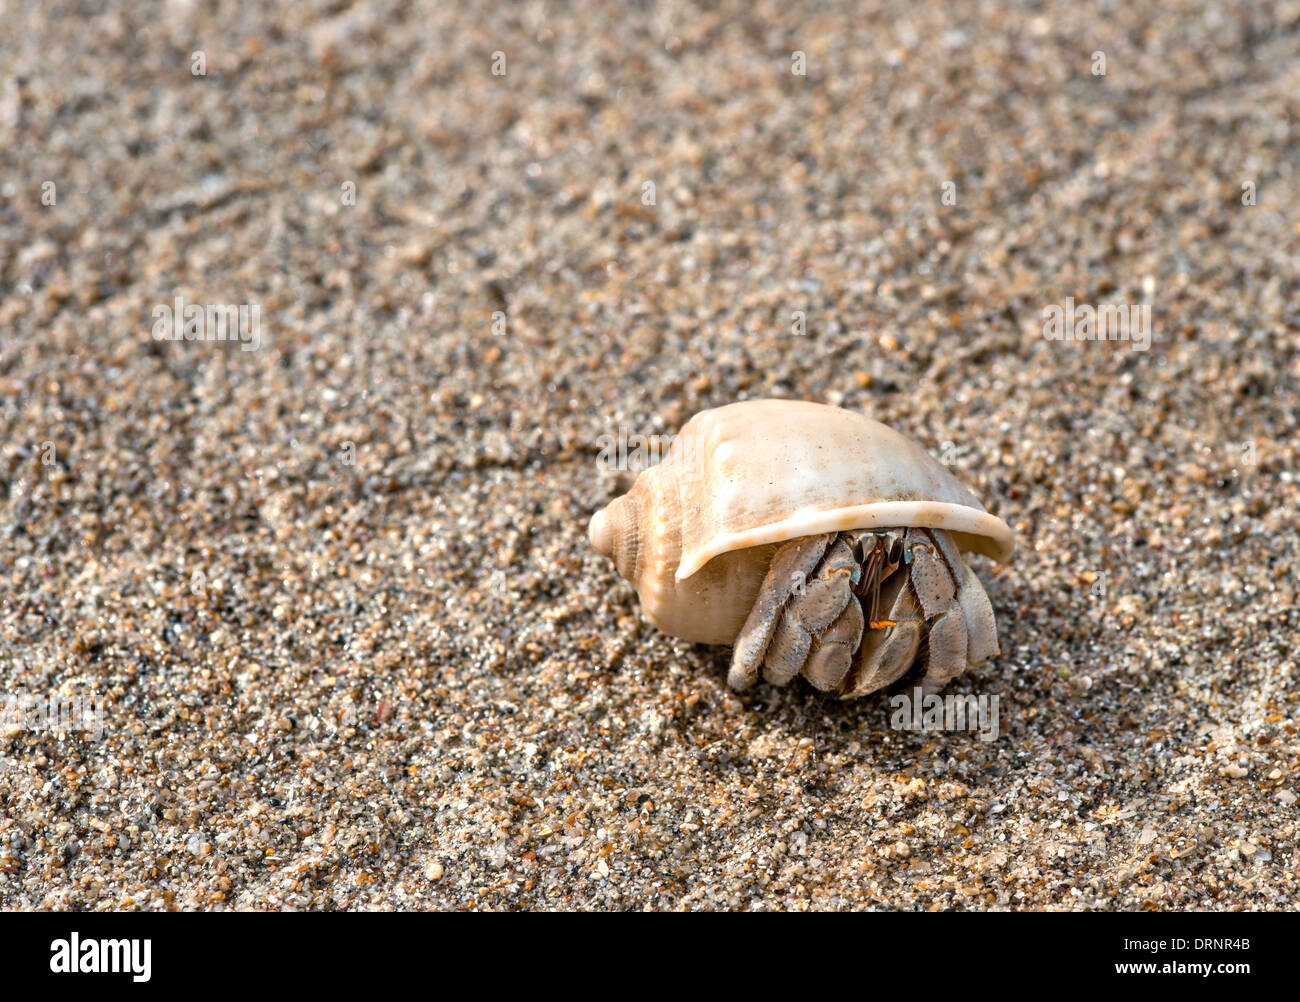 Hermit Crab at Beach of Koh Lanta, Thailand - Stock Image